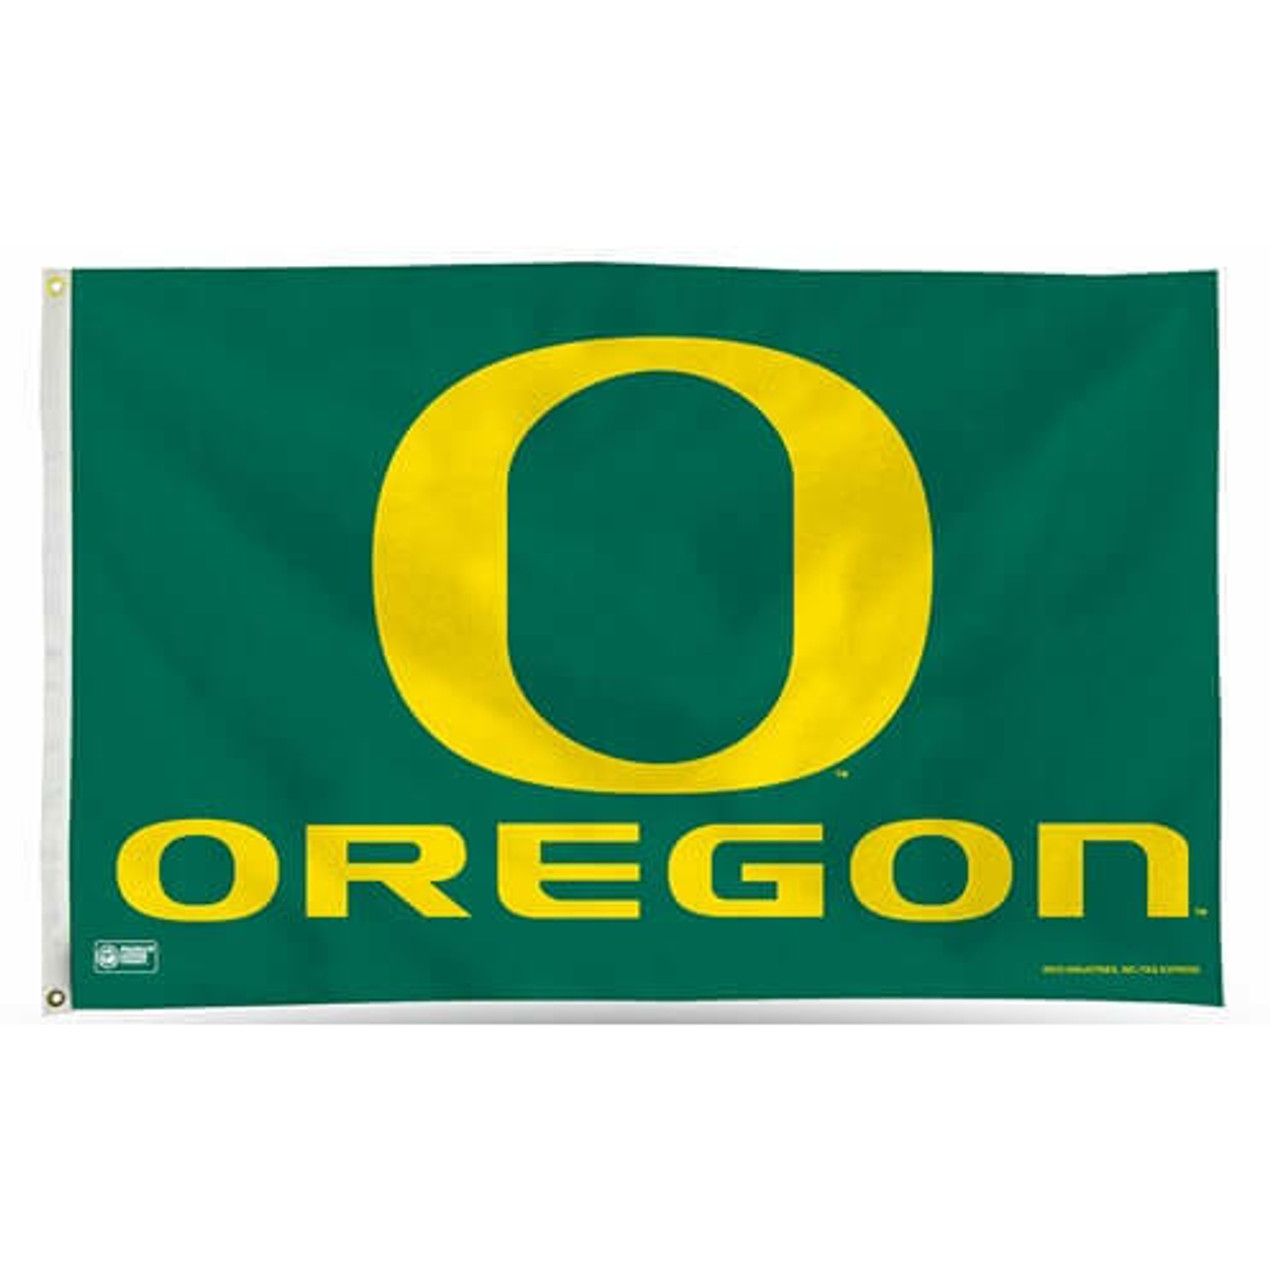 University of Oregon Flag with white canvas header and brass grommets. Green flag with letter O at center in yellow and 'Oregon' text below it.